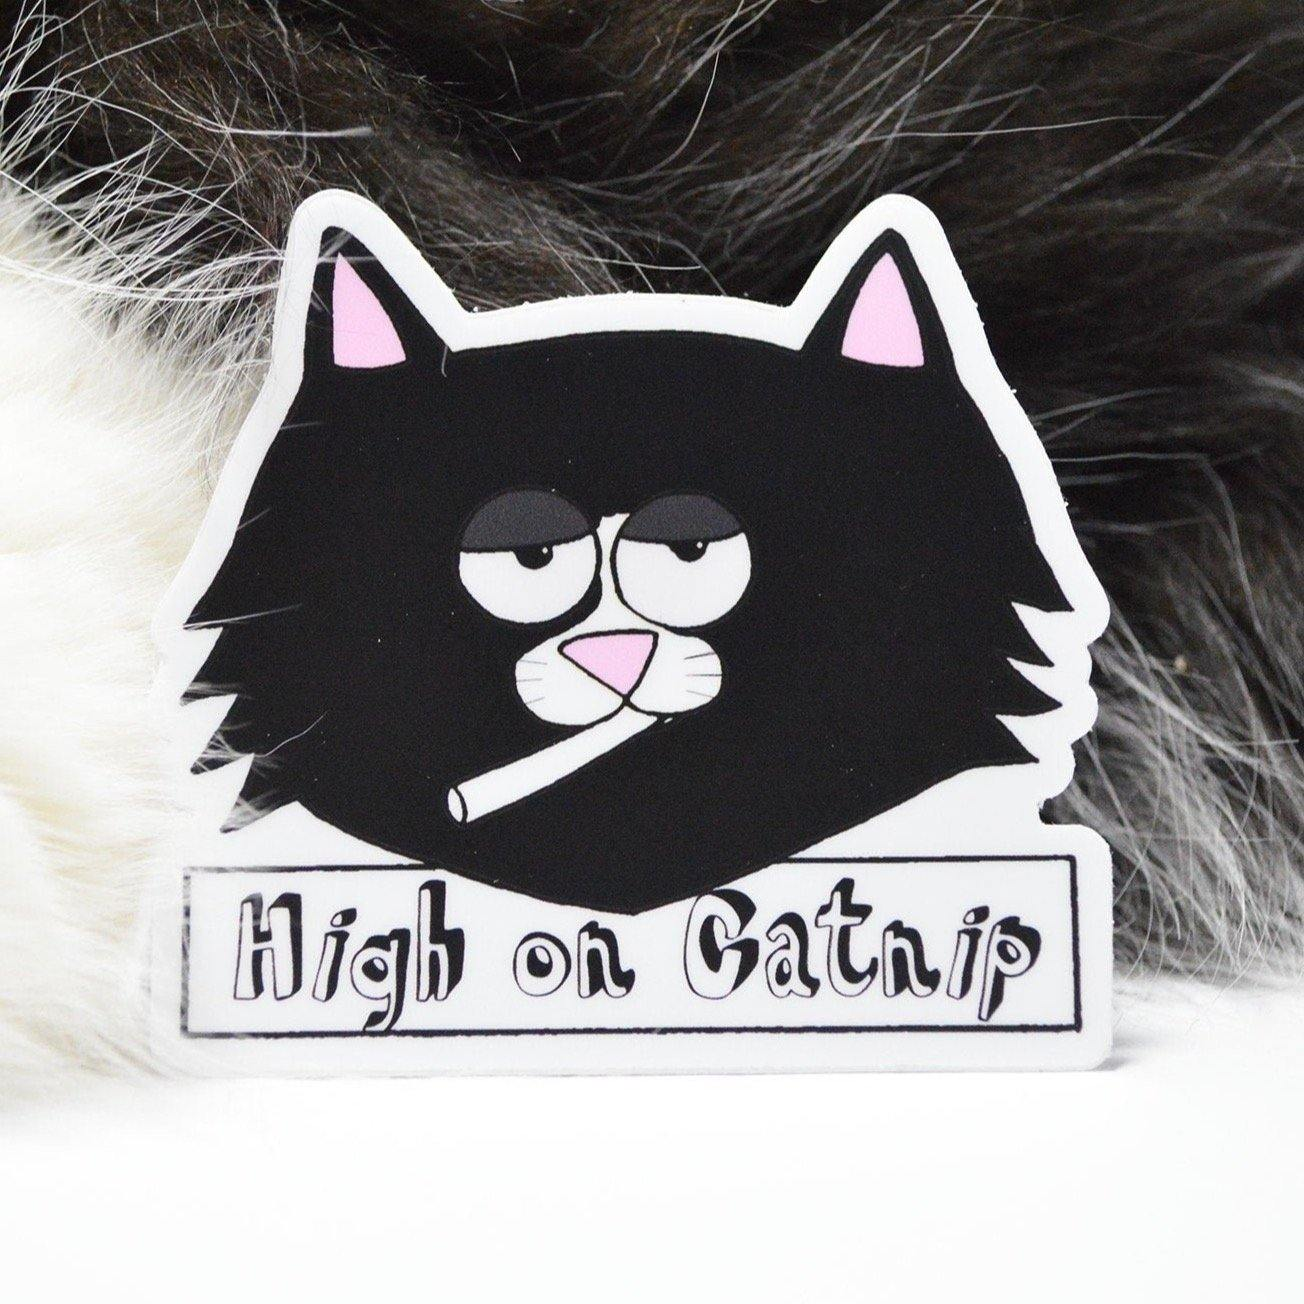 High on Catnip Sticker - 3 W cats